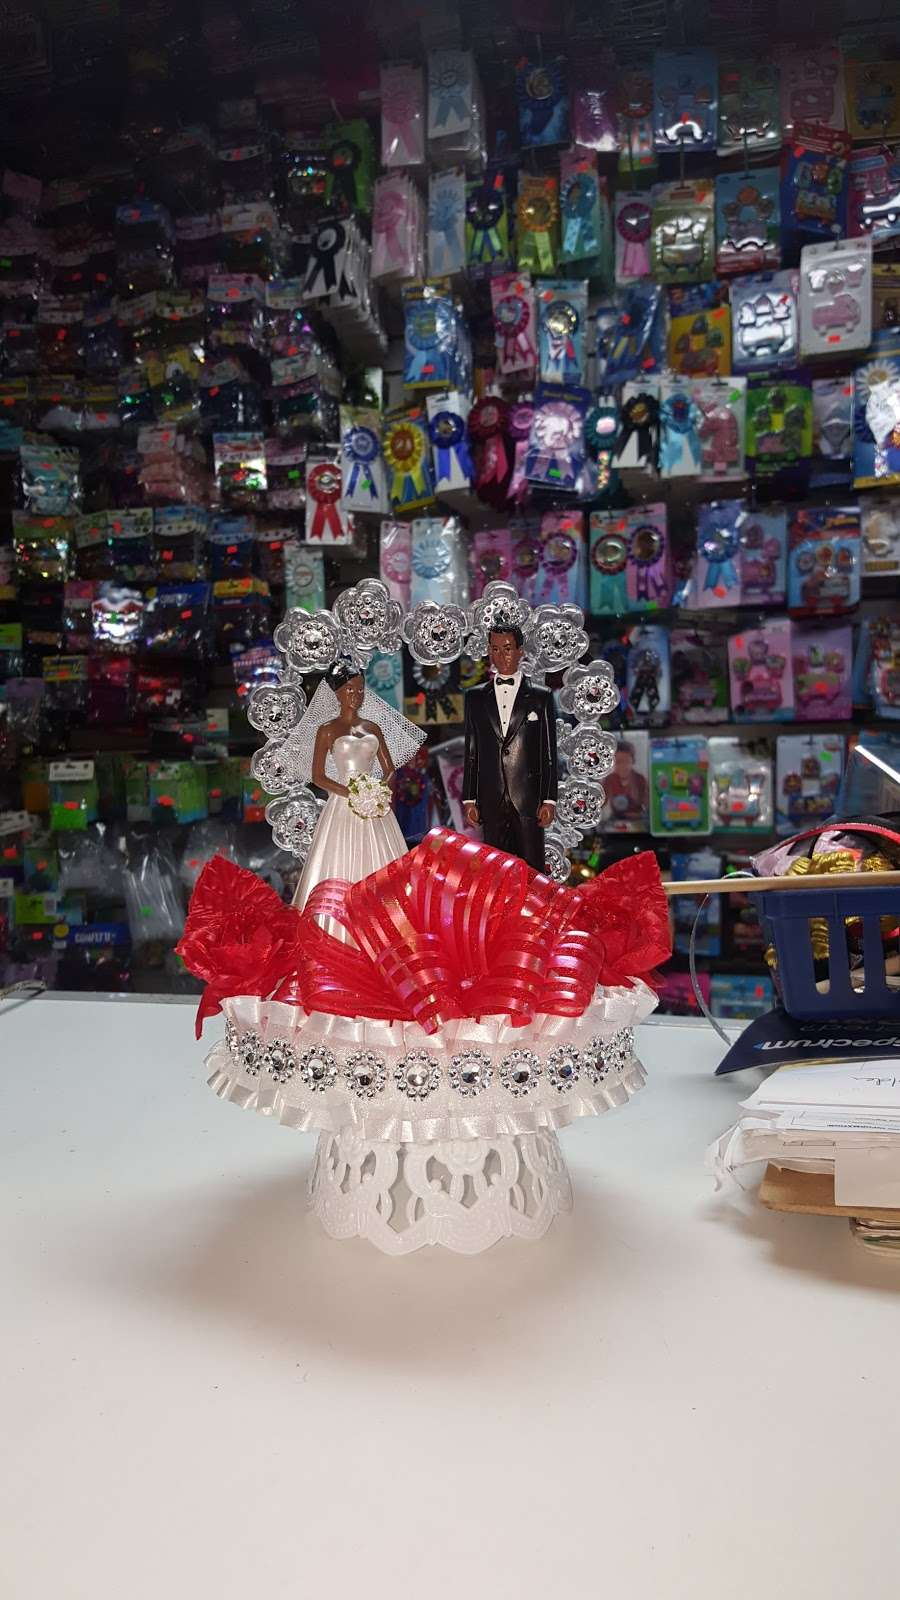 Bronx Party Center - home goods store  | Photo 3 of 4 | Address: 3000 Third Ave, Bronx, NY 10455, USA | Phone: (718) 742-7655